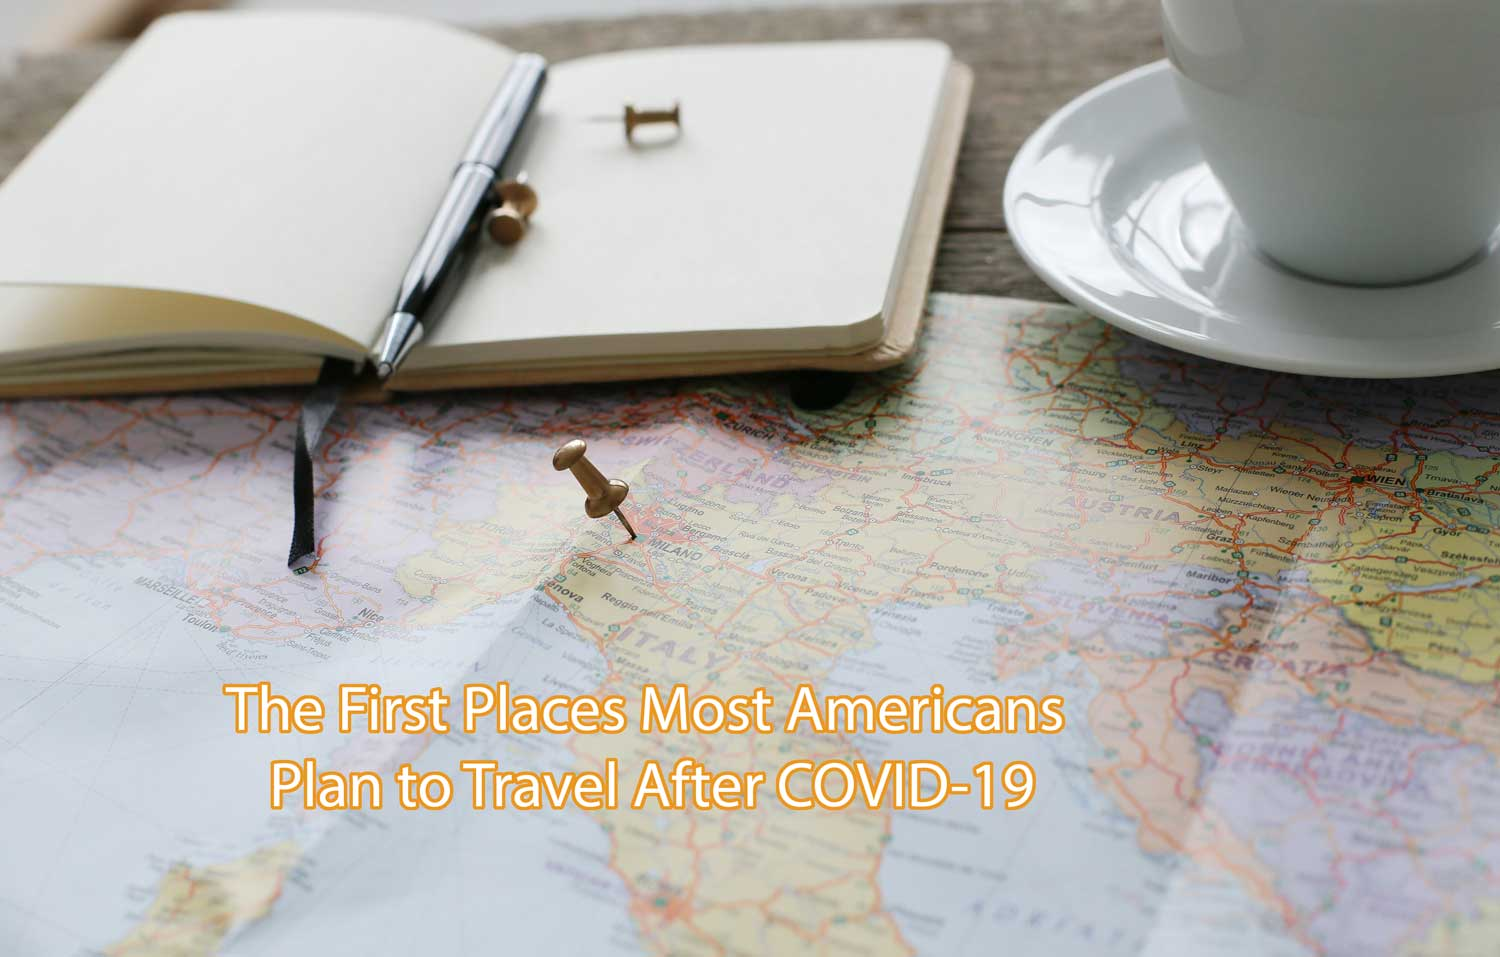 The First Places Most Americans Plan to Travel After COVID-19